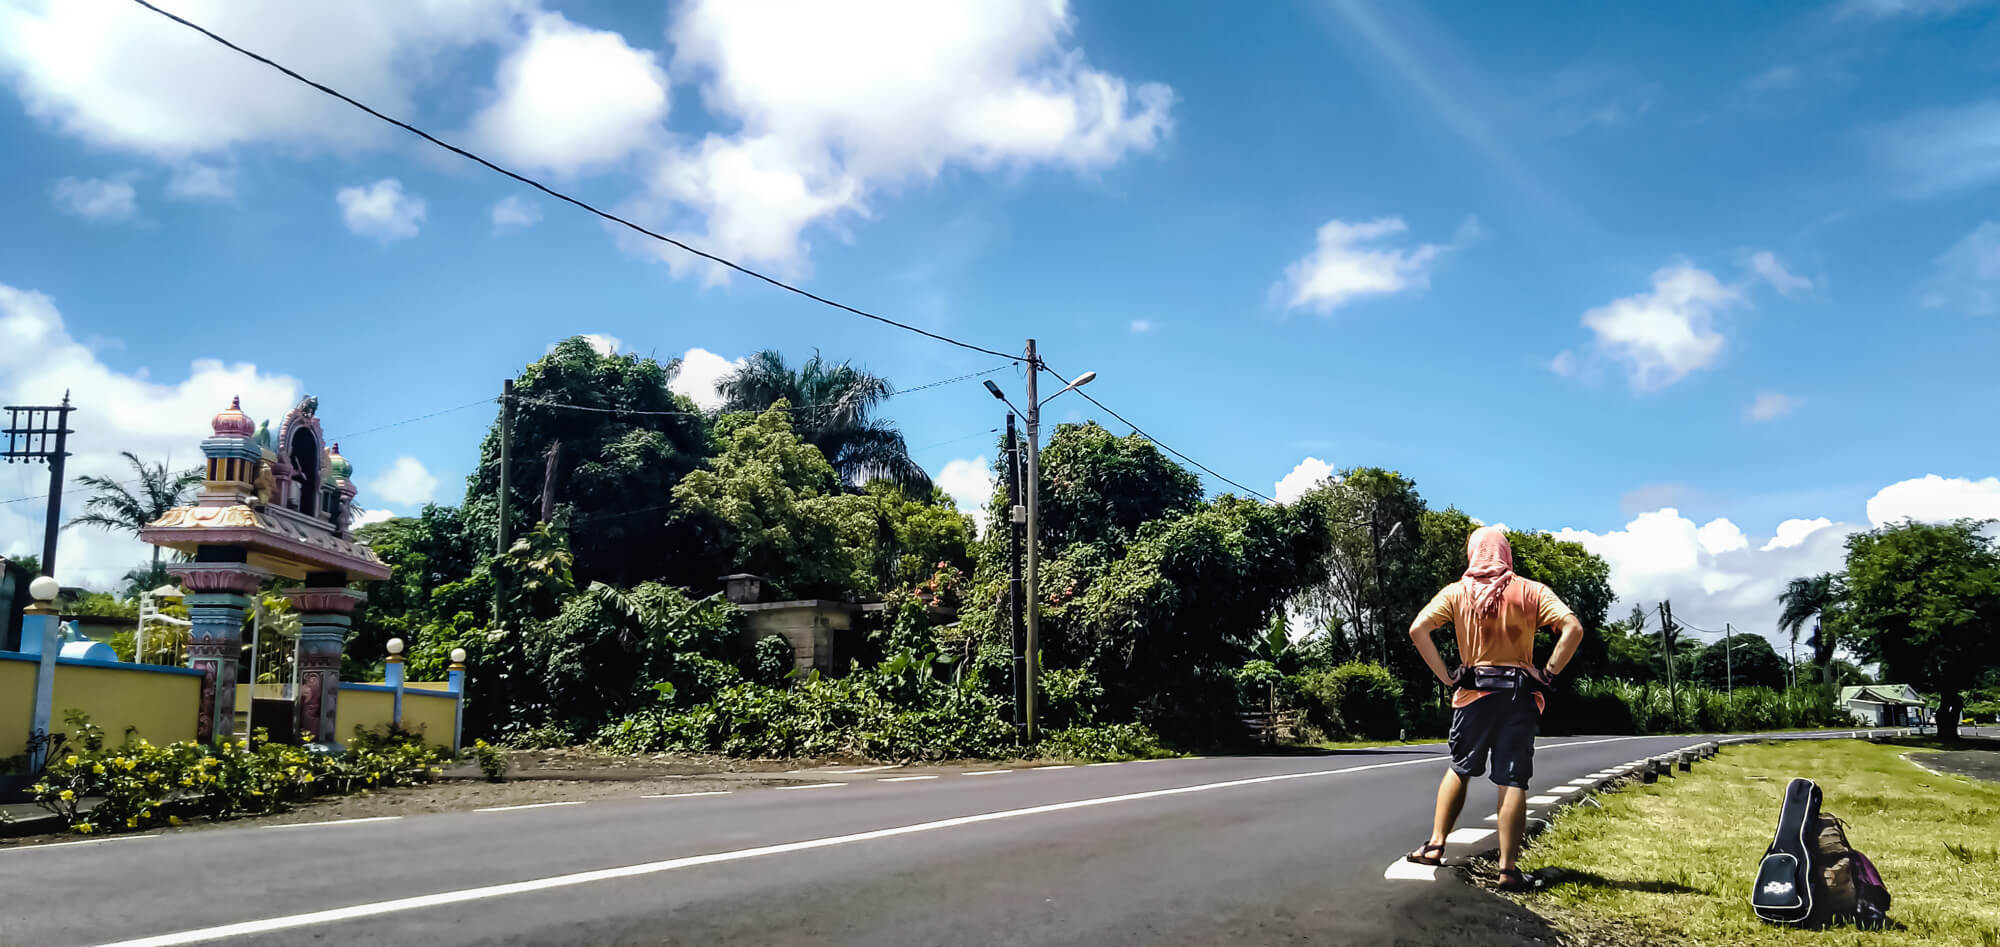 A backpacker hitchhiking in Mauritius to save on travel cost